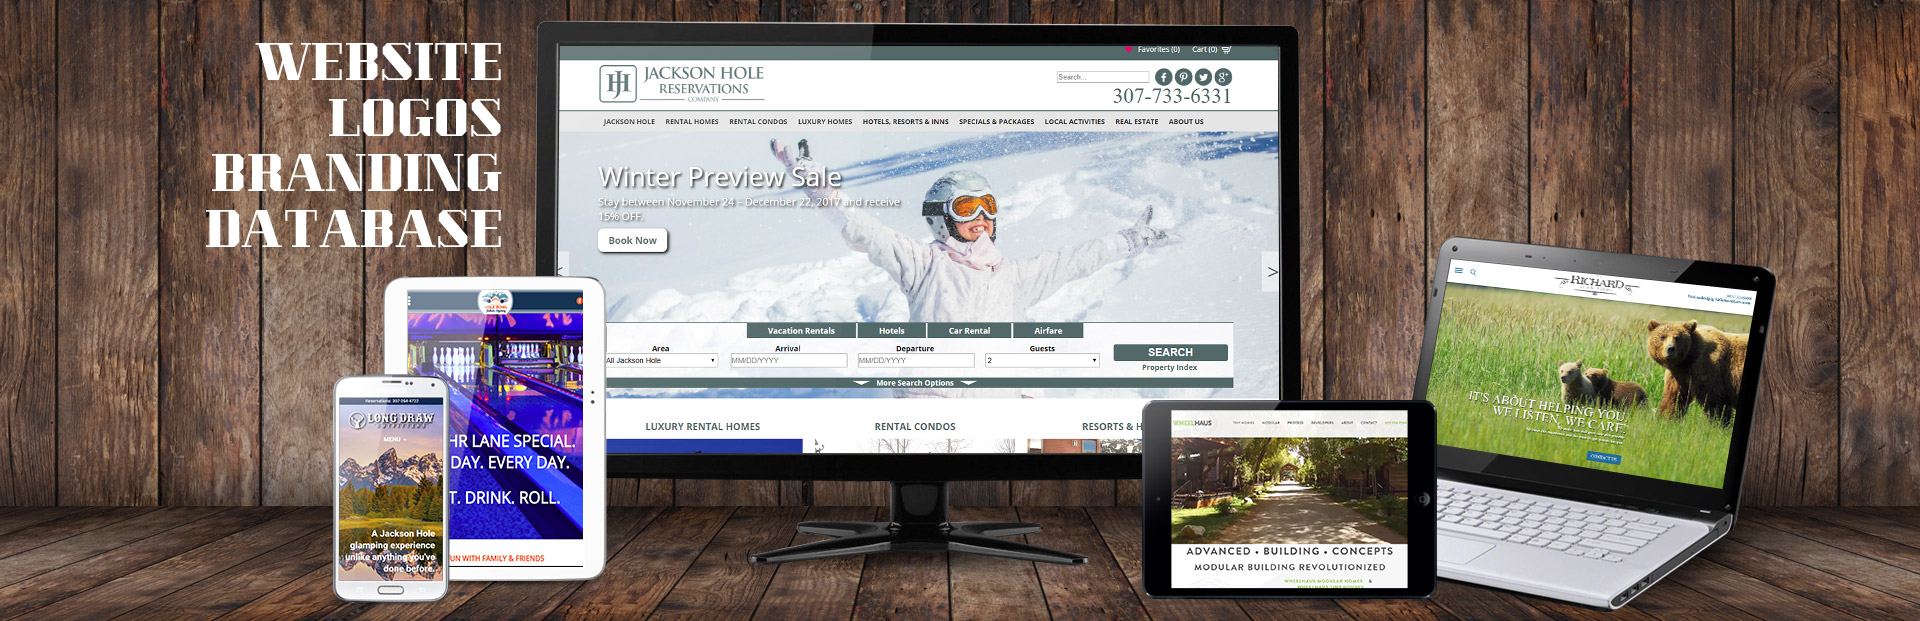 Jackson Hole Web Design